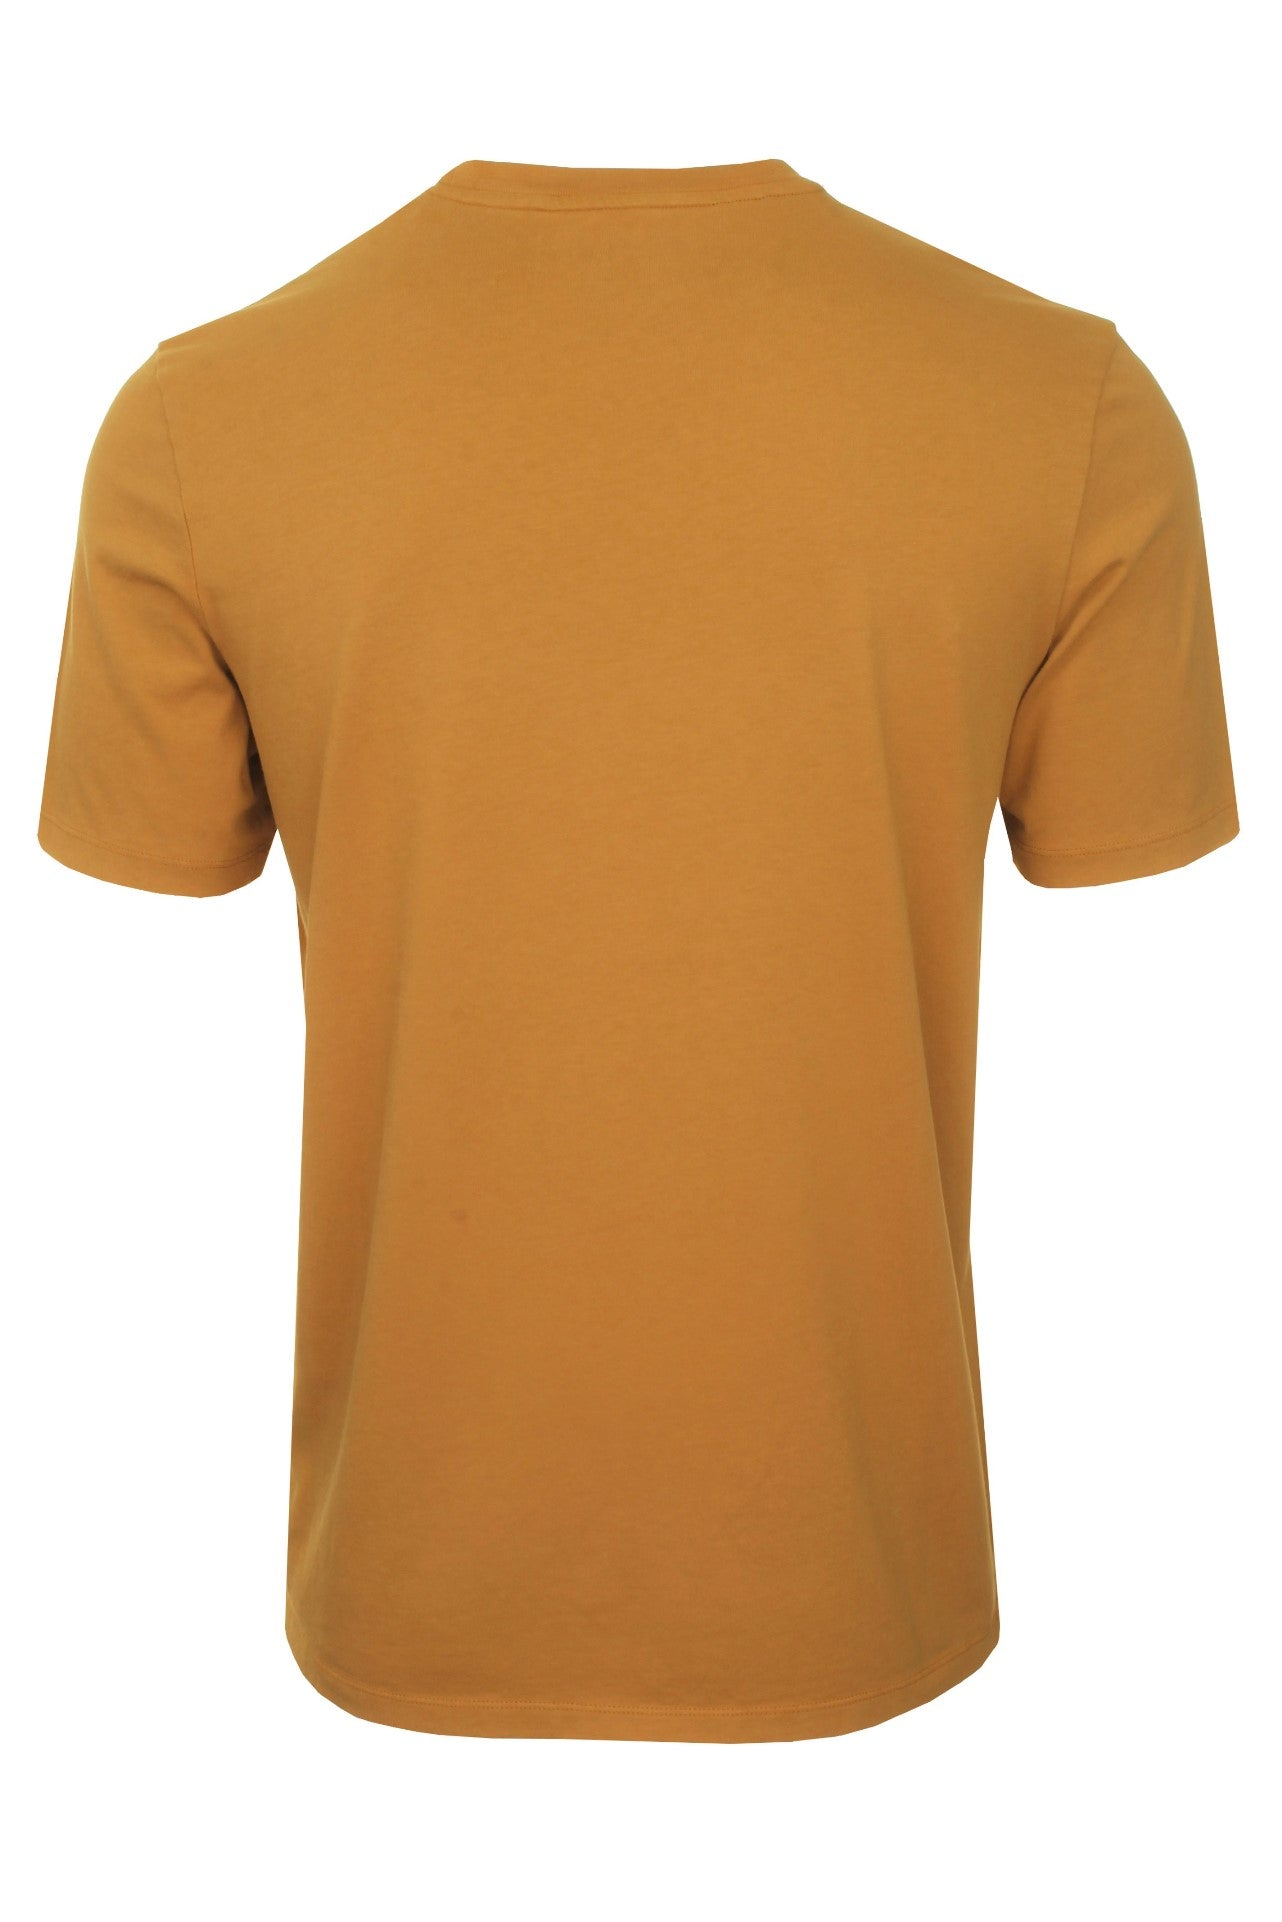 Timberland 'Kennebec River Tree Logo' T-Shirt - Short Sleeved_02_Tb0A2C2R_Wheat Boot